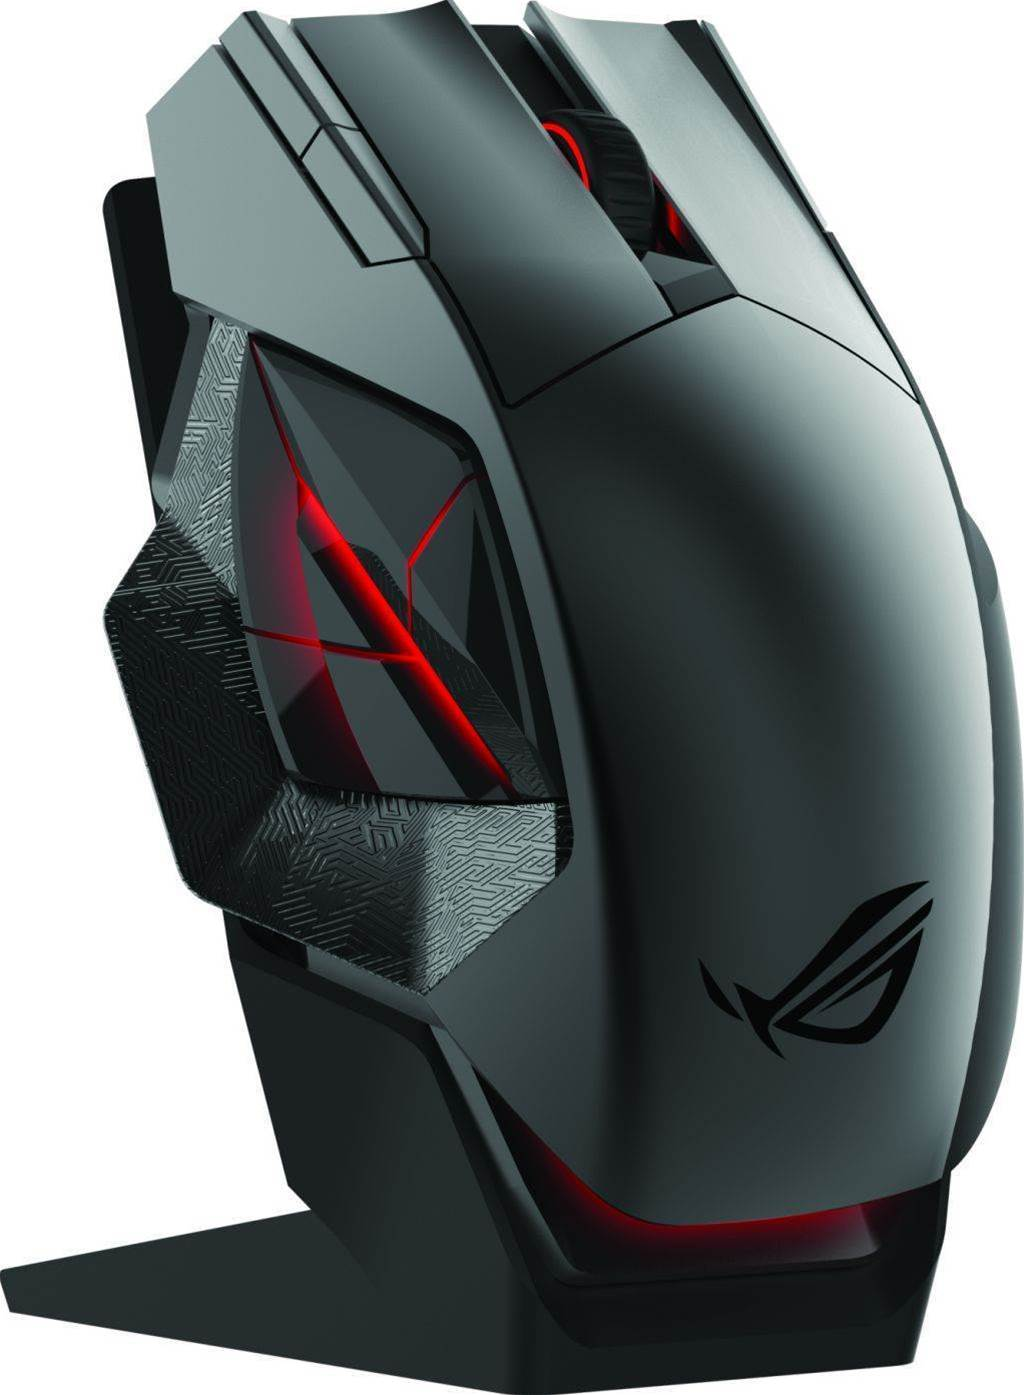 One Minute Review: Asus ROG Spatha gaming mouse